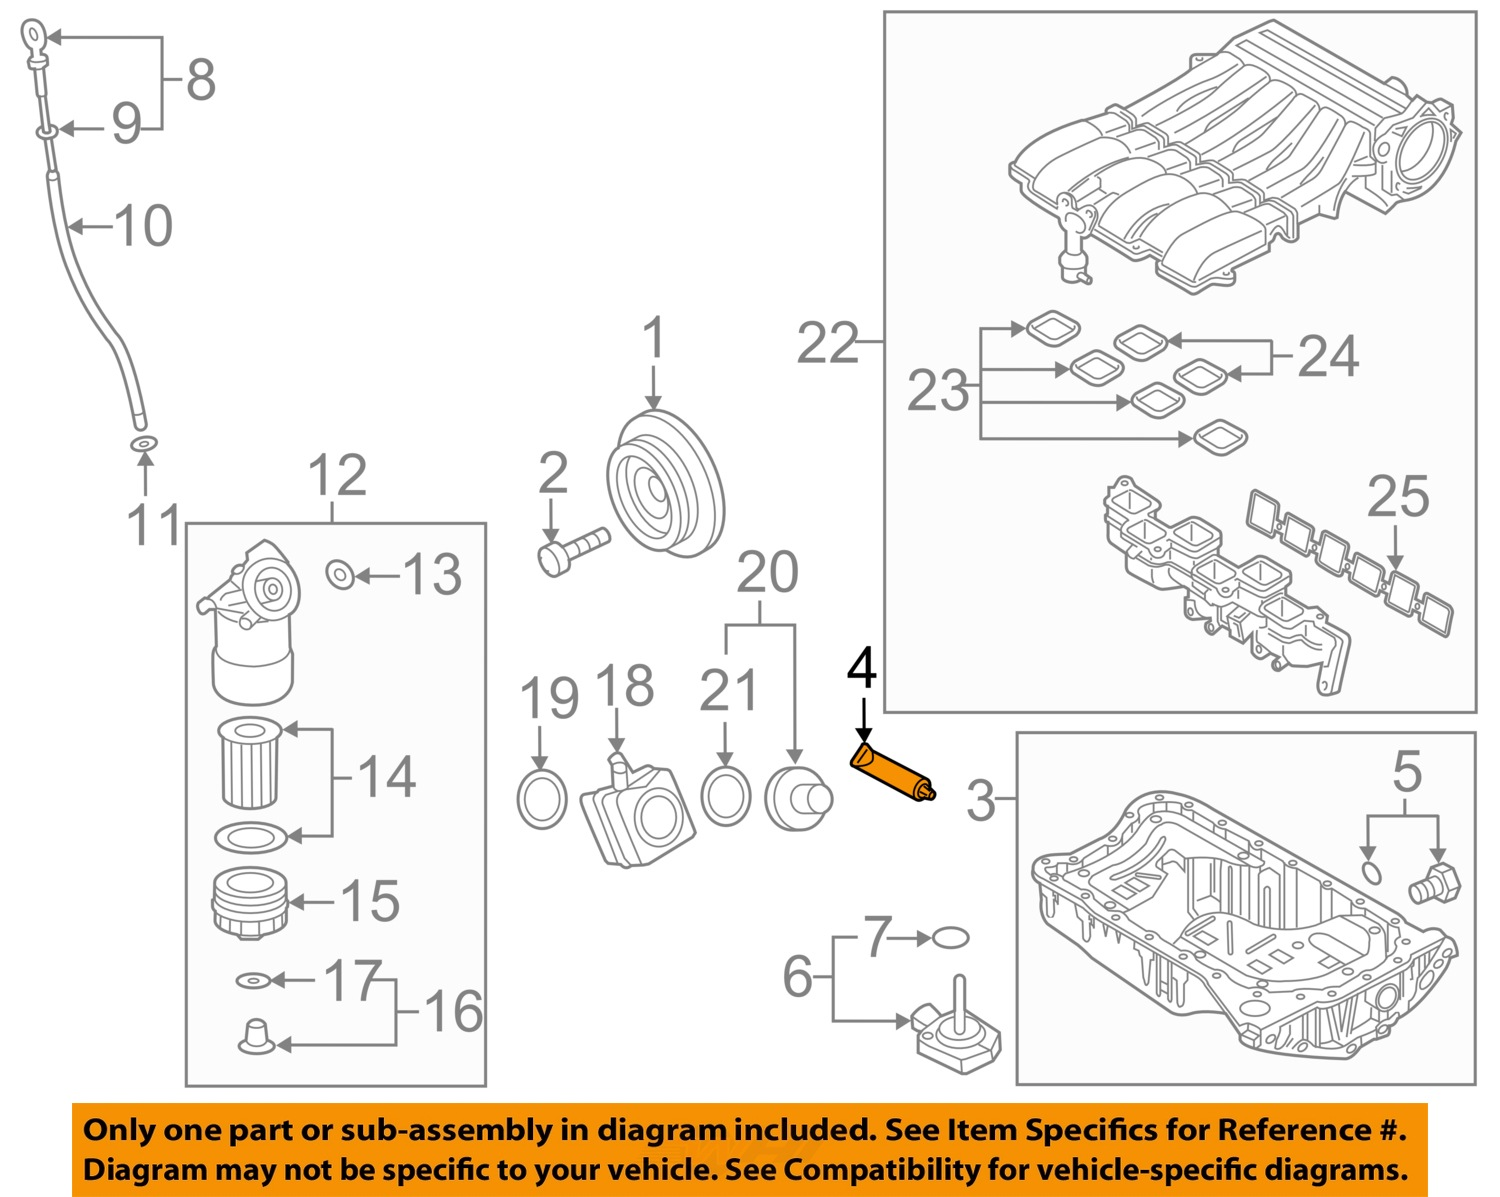 vw oem parts diagram vw image wiring diagram vw volkswagen oem 11 16 touareg engine parts oil pan sealer d154103a1 on vw oem parts